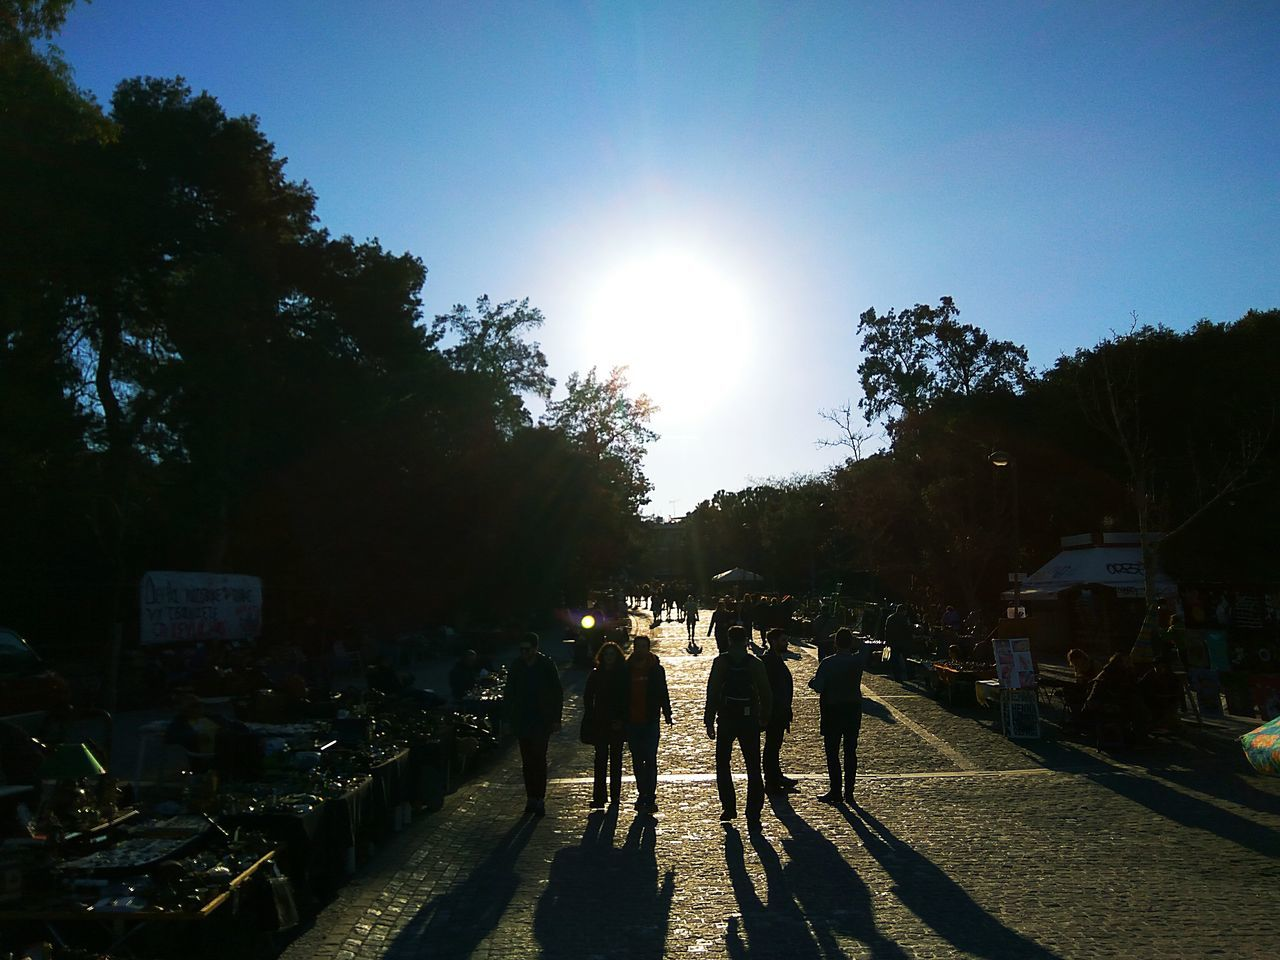 sunlight, real people, sunbeam, tree, large group of people, sun, walking, rear view, women, leisure activity, men, day, sky, outdoors, lifestyles, standing, nature, togetherness, people